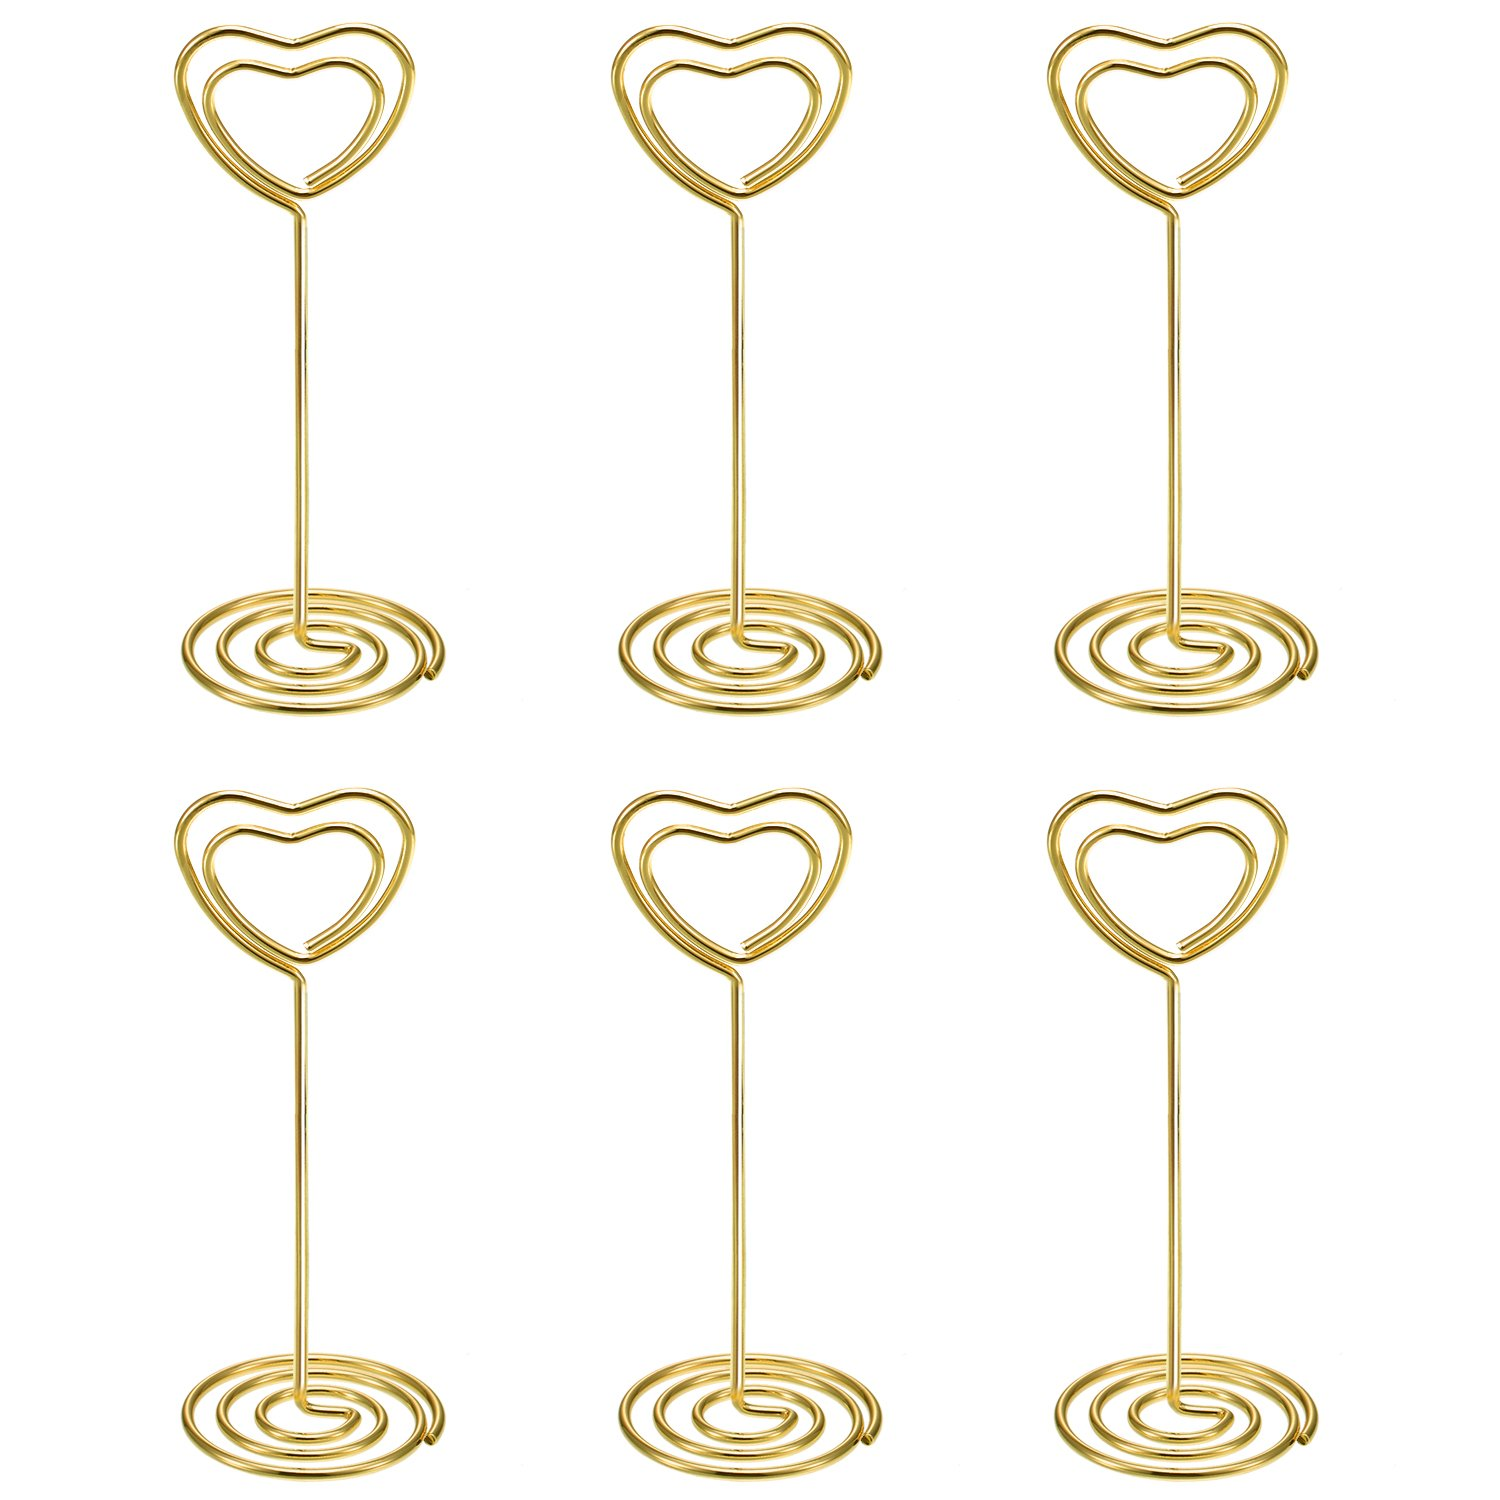 Shappy 24 Pack of Table Number Card Holders Photo Holder Stand Place Card Paper Menu Clips Holders, Heart Shape (Gold)